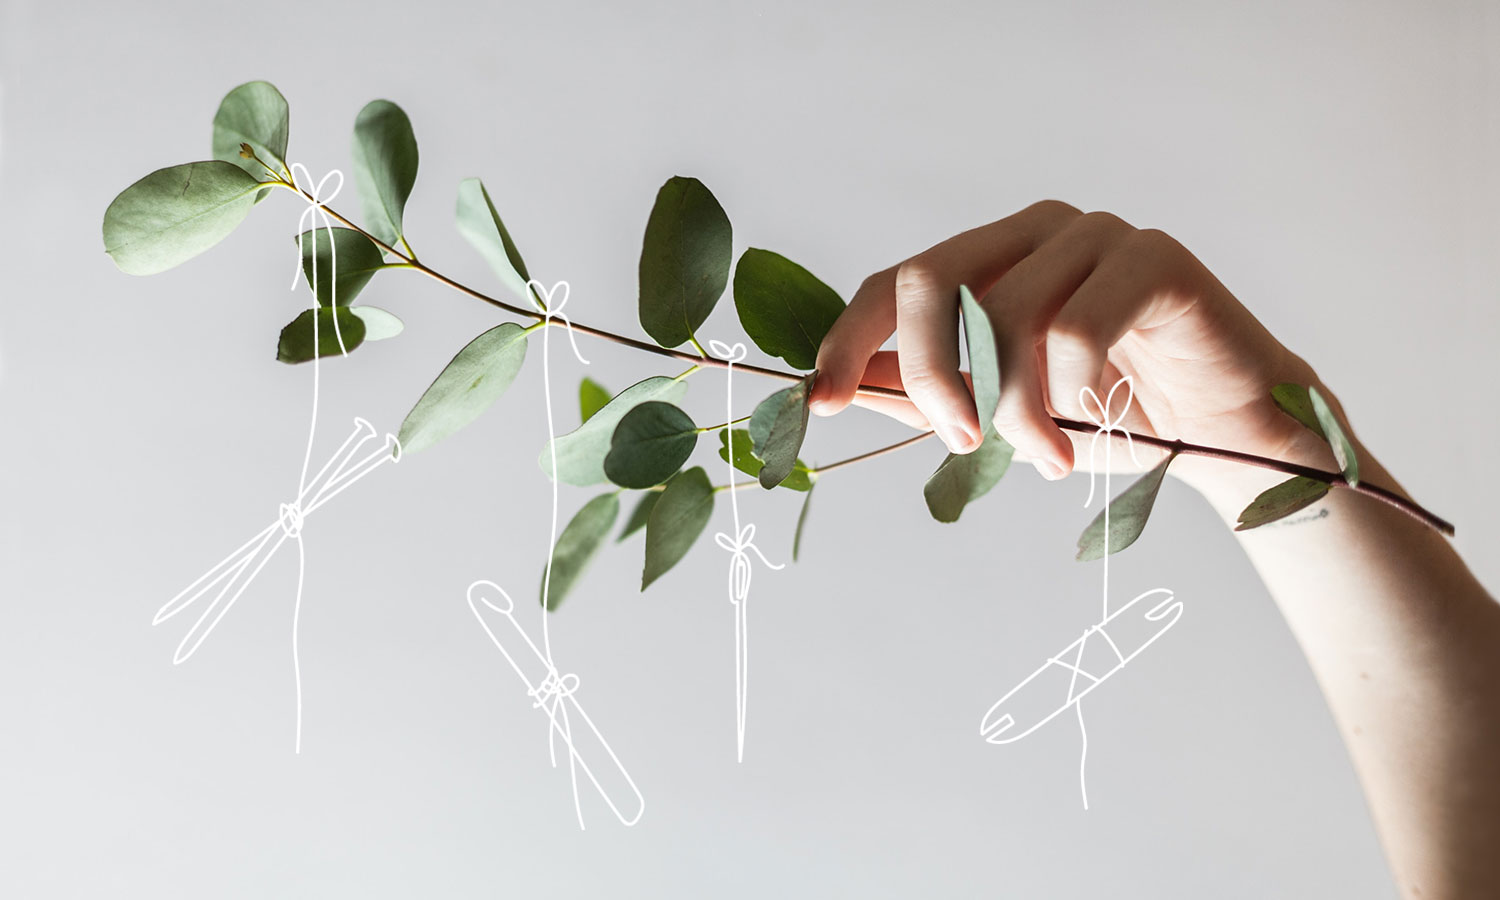 Collage of a photo of a hand holding an eucalyptus branch with white line illustrations of crafting tools hanging down from the branch